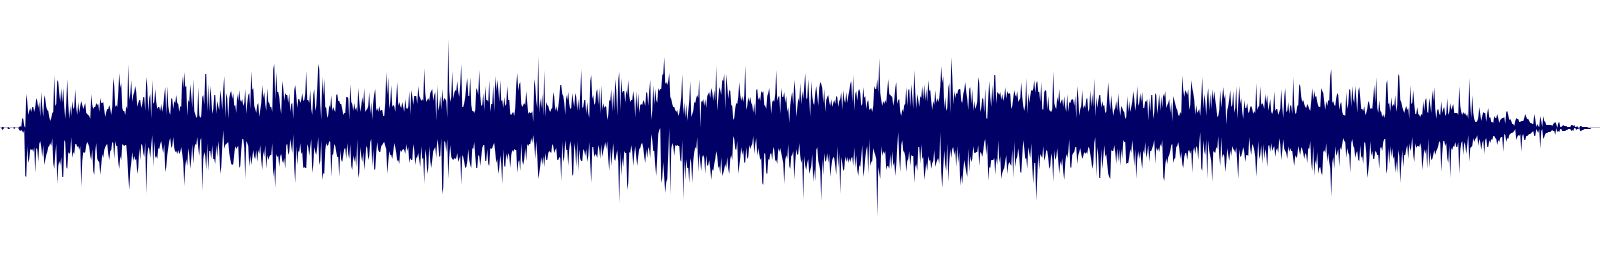 waveform of track #154627